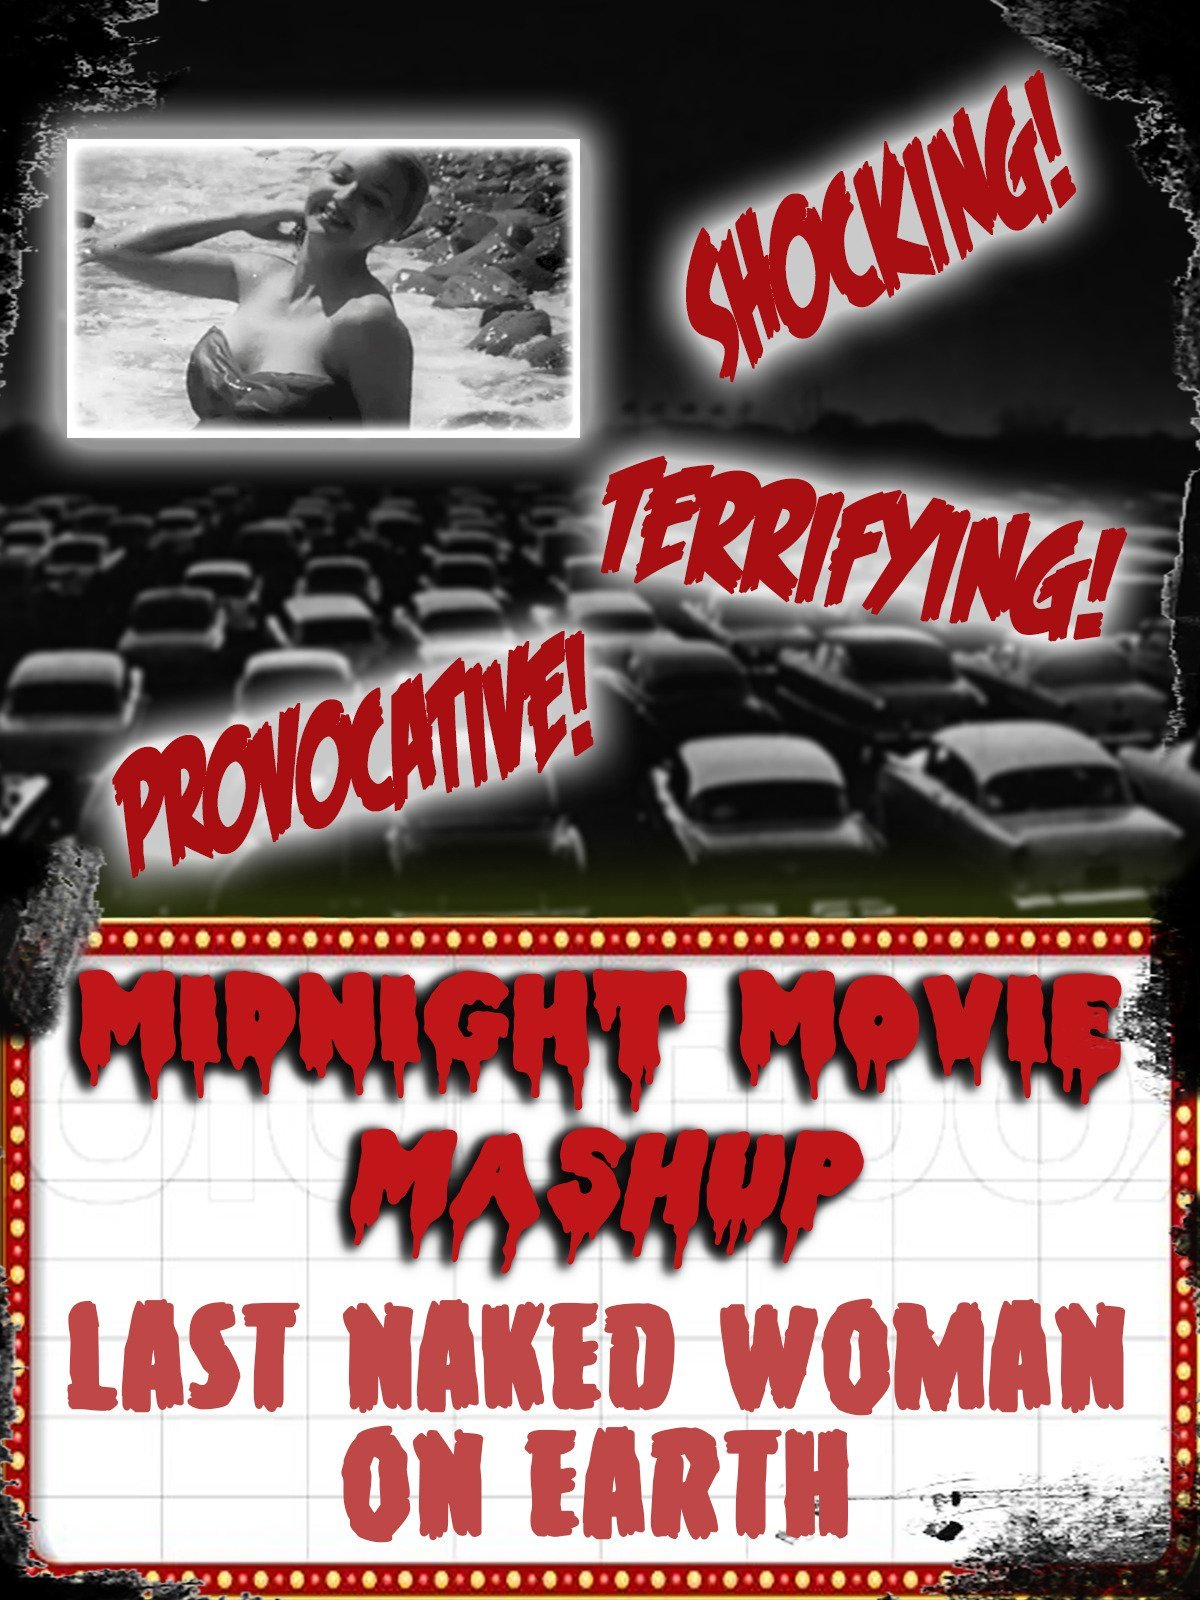 Last Naked Woman on Earth